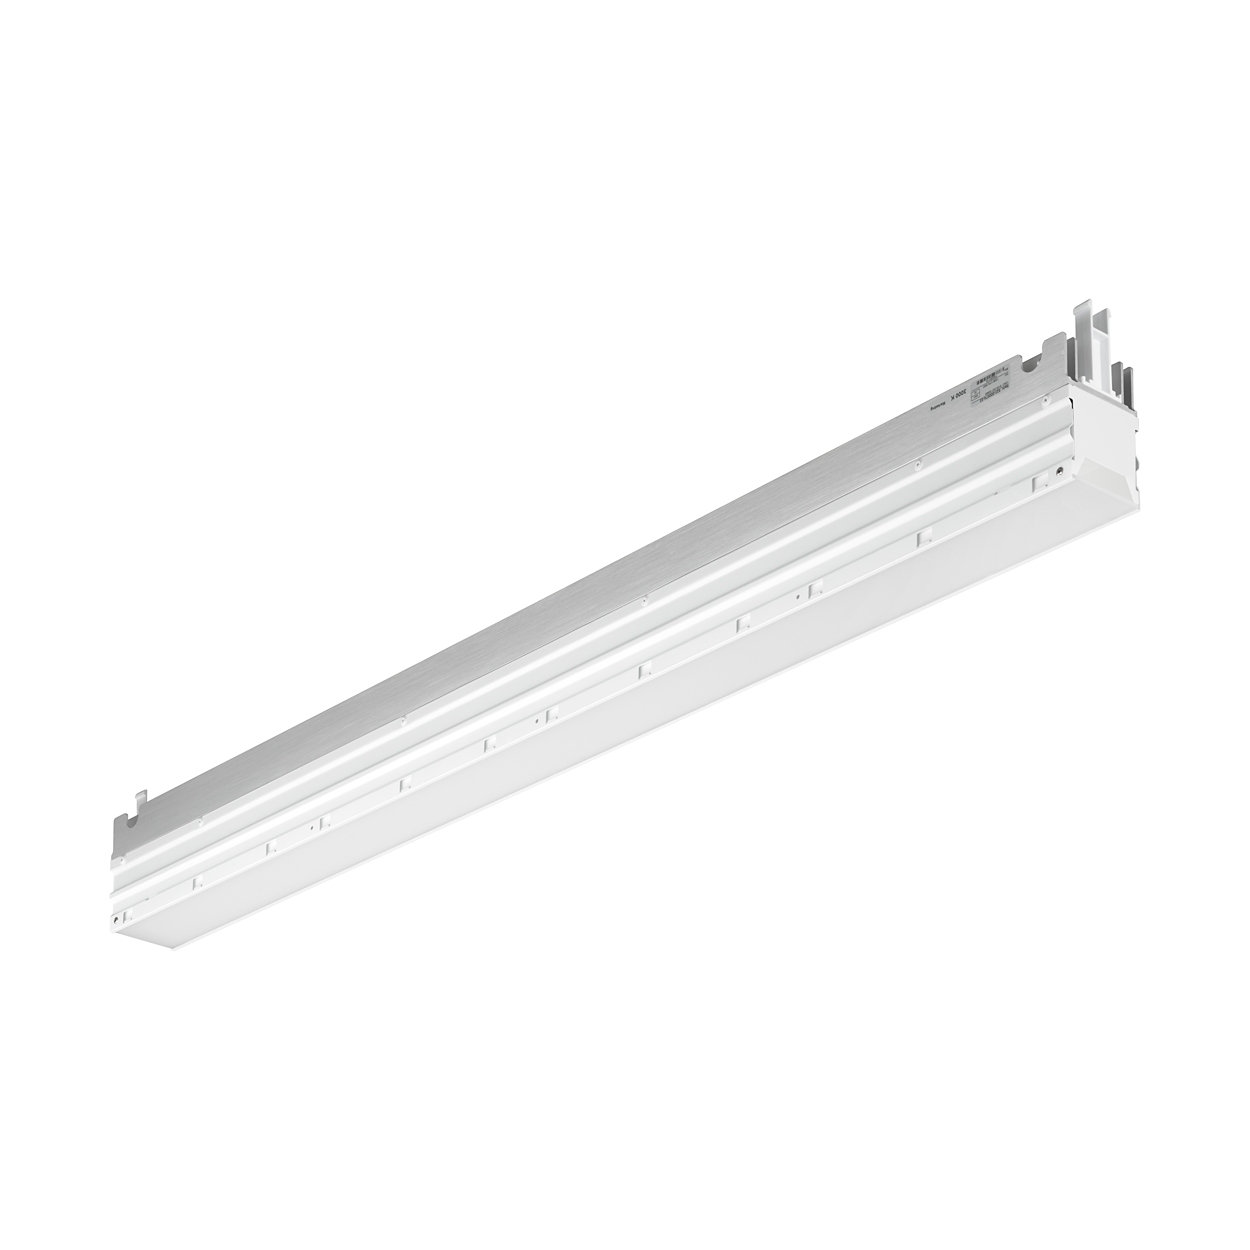 SkyRibbon IntelliHue Linear Direct Powercore – recessed linear interior LED luminaire for direct-view and general illumination applications